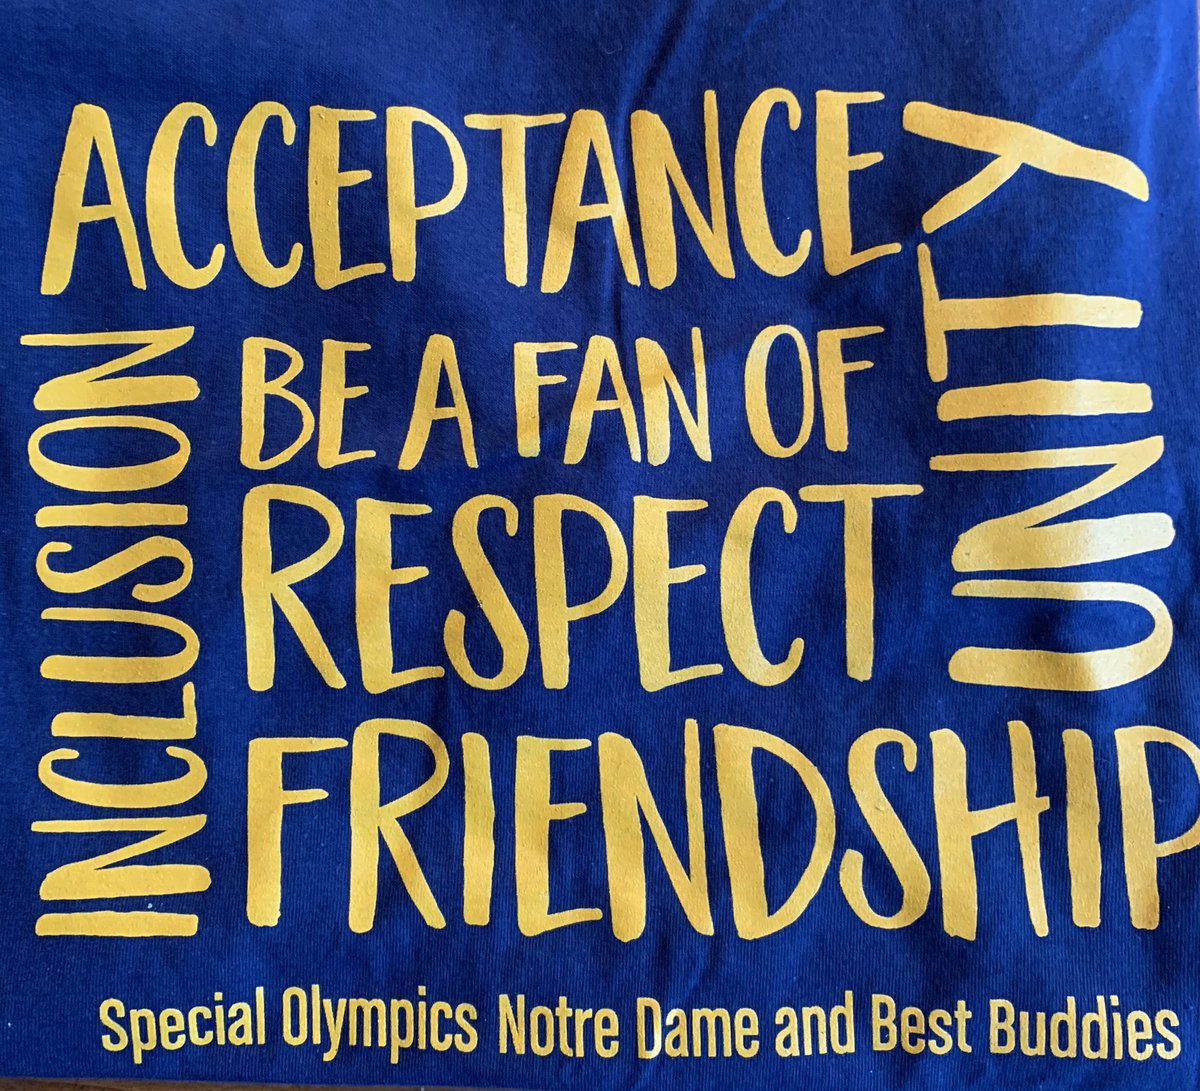 Thanks for the shirt @NotreDame special olympics! ☘️❤️